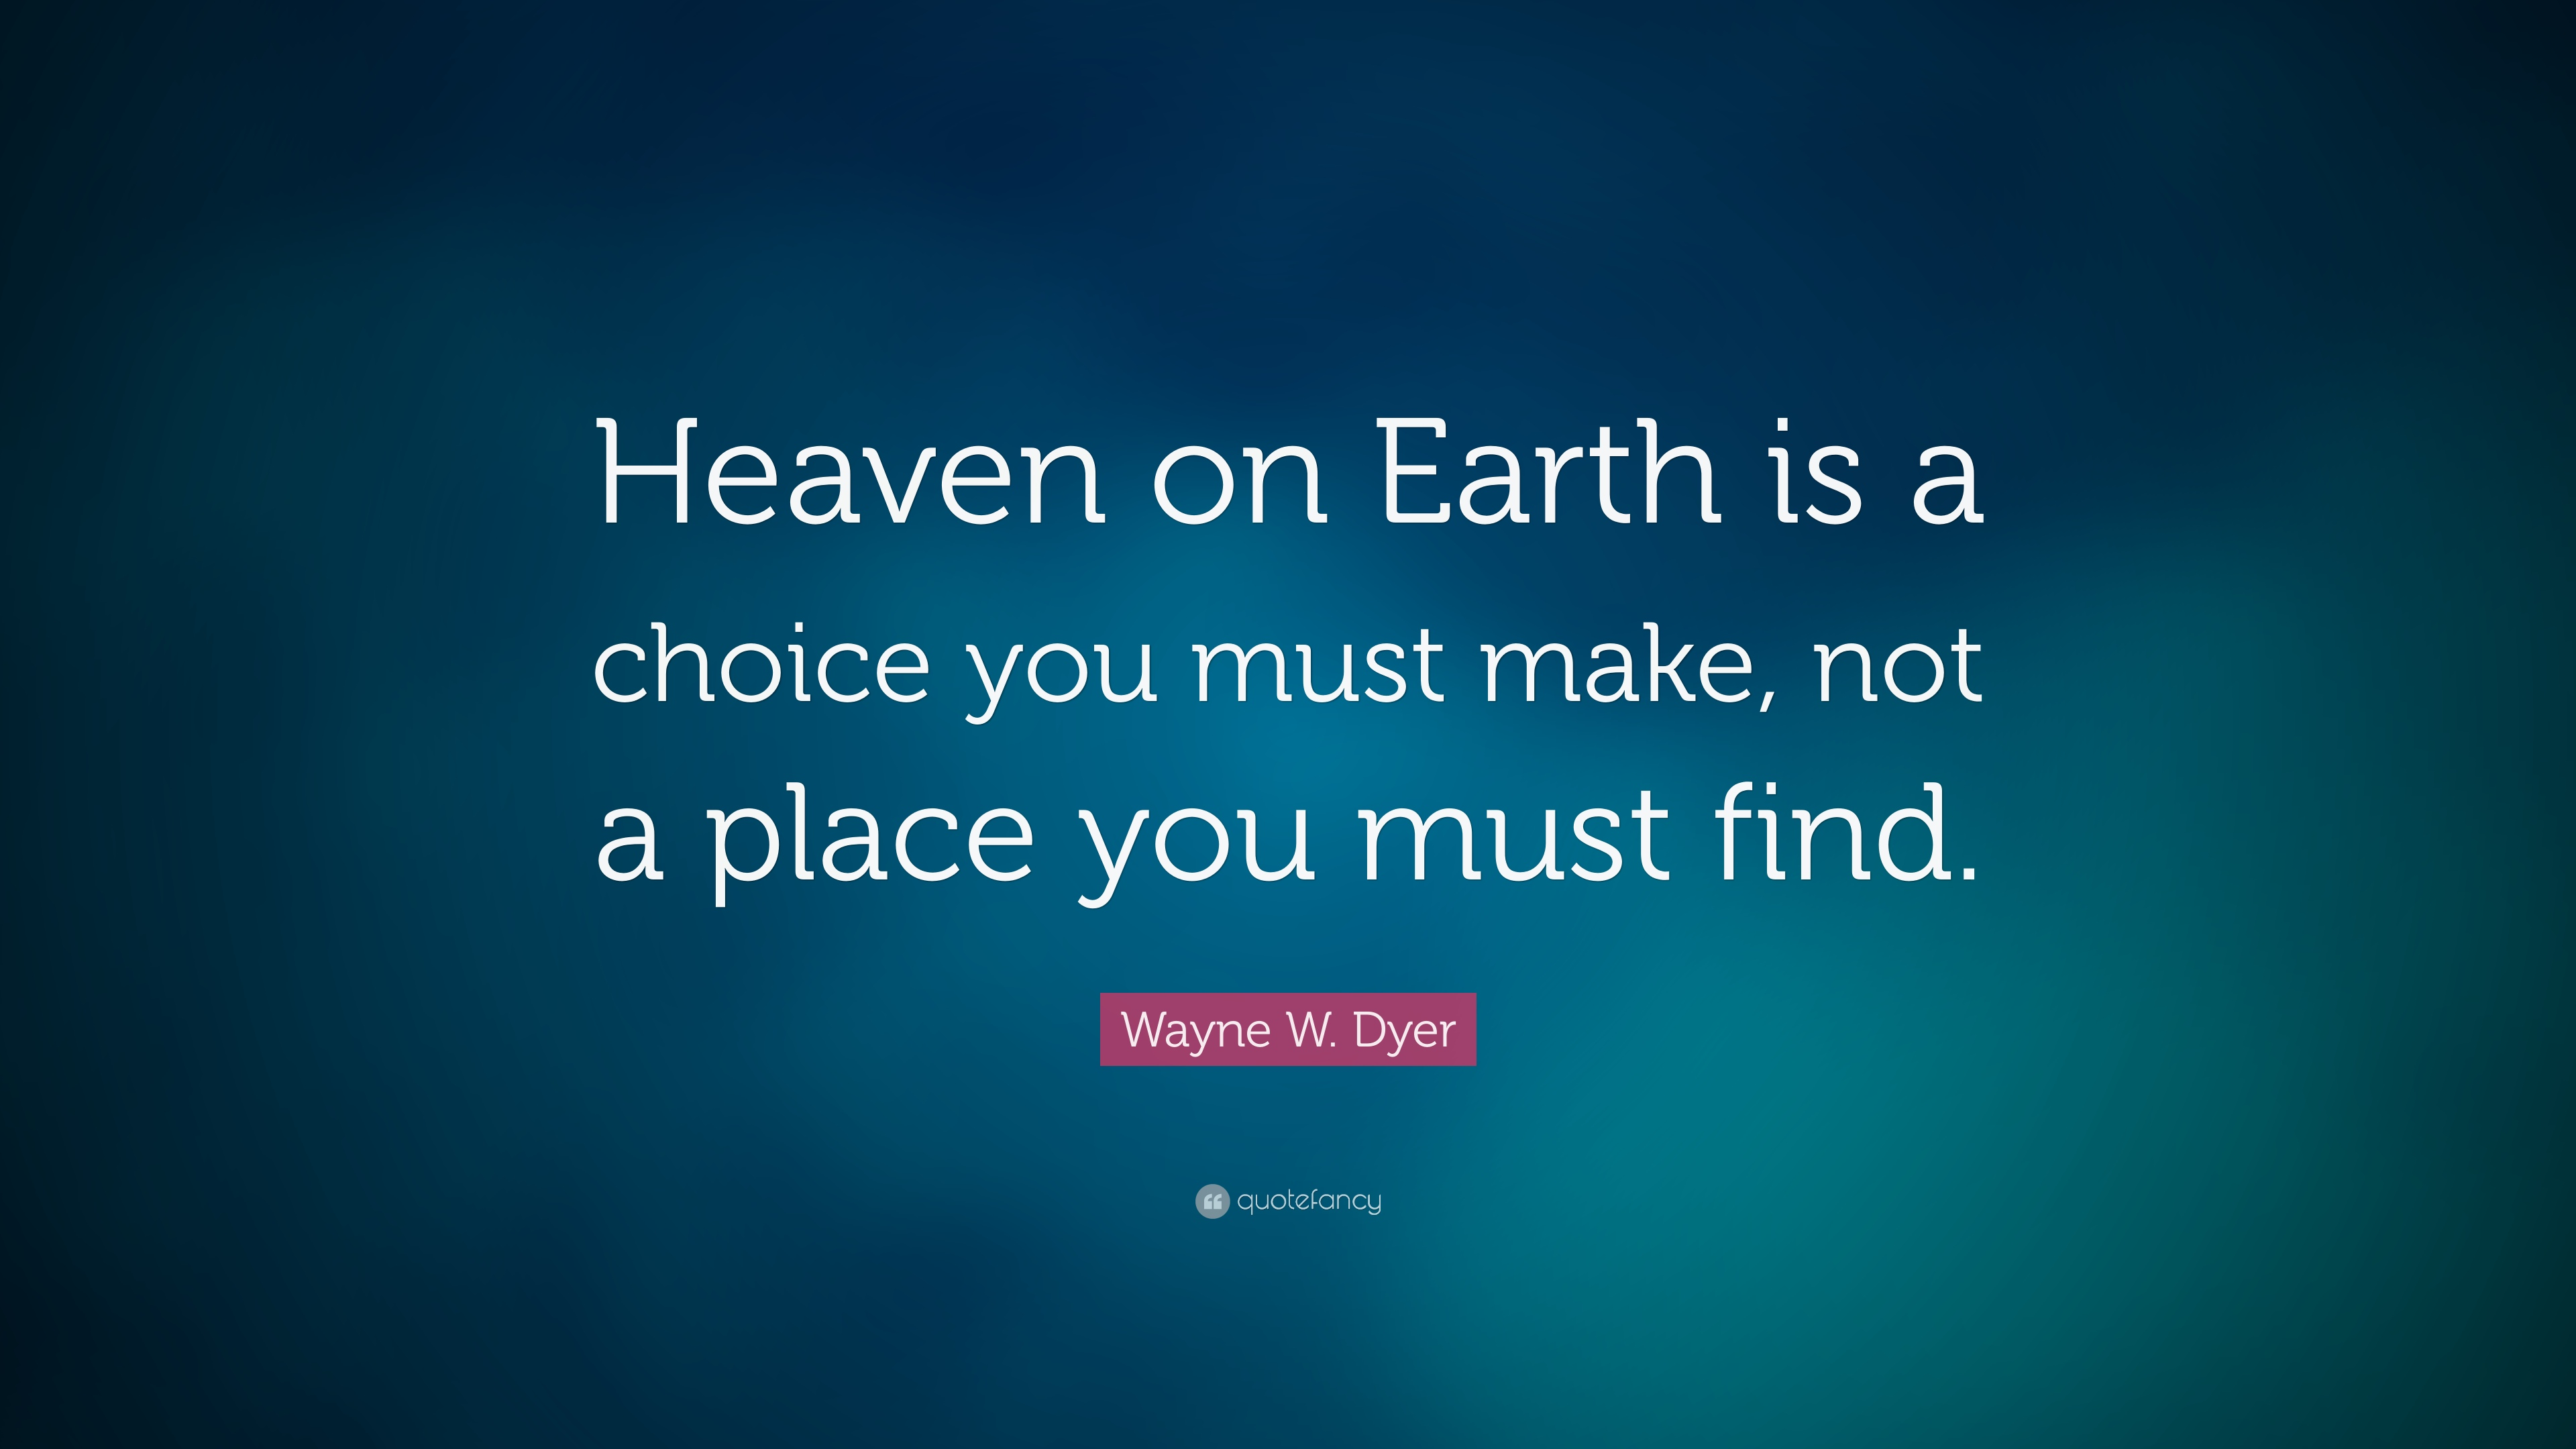 Wayne W. Dyer Quote: Heaven on Earth is a choice you must make, not ...